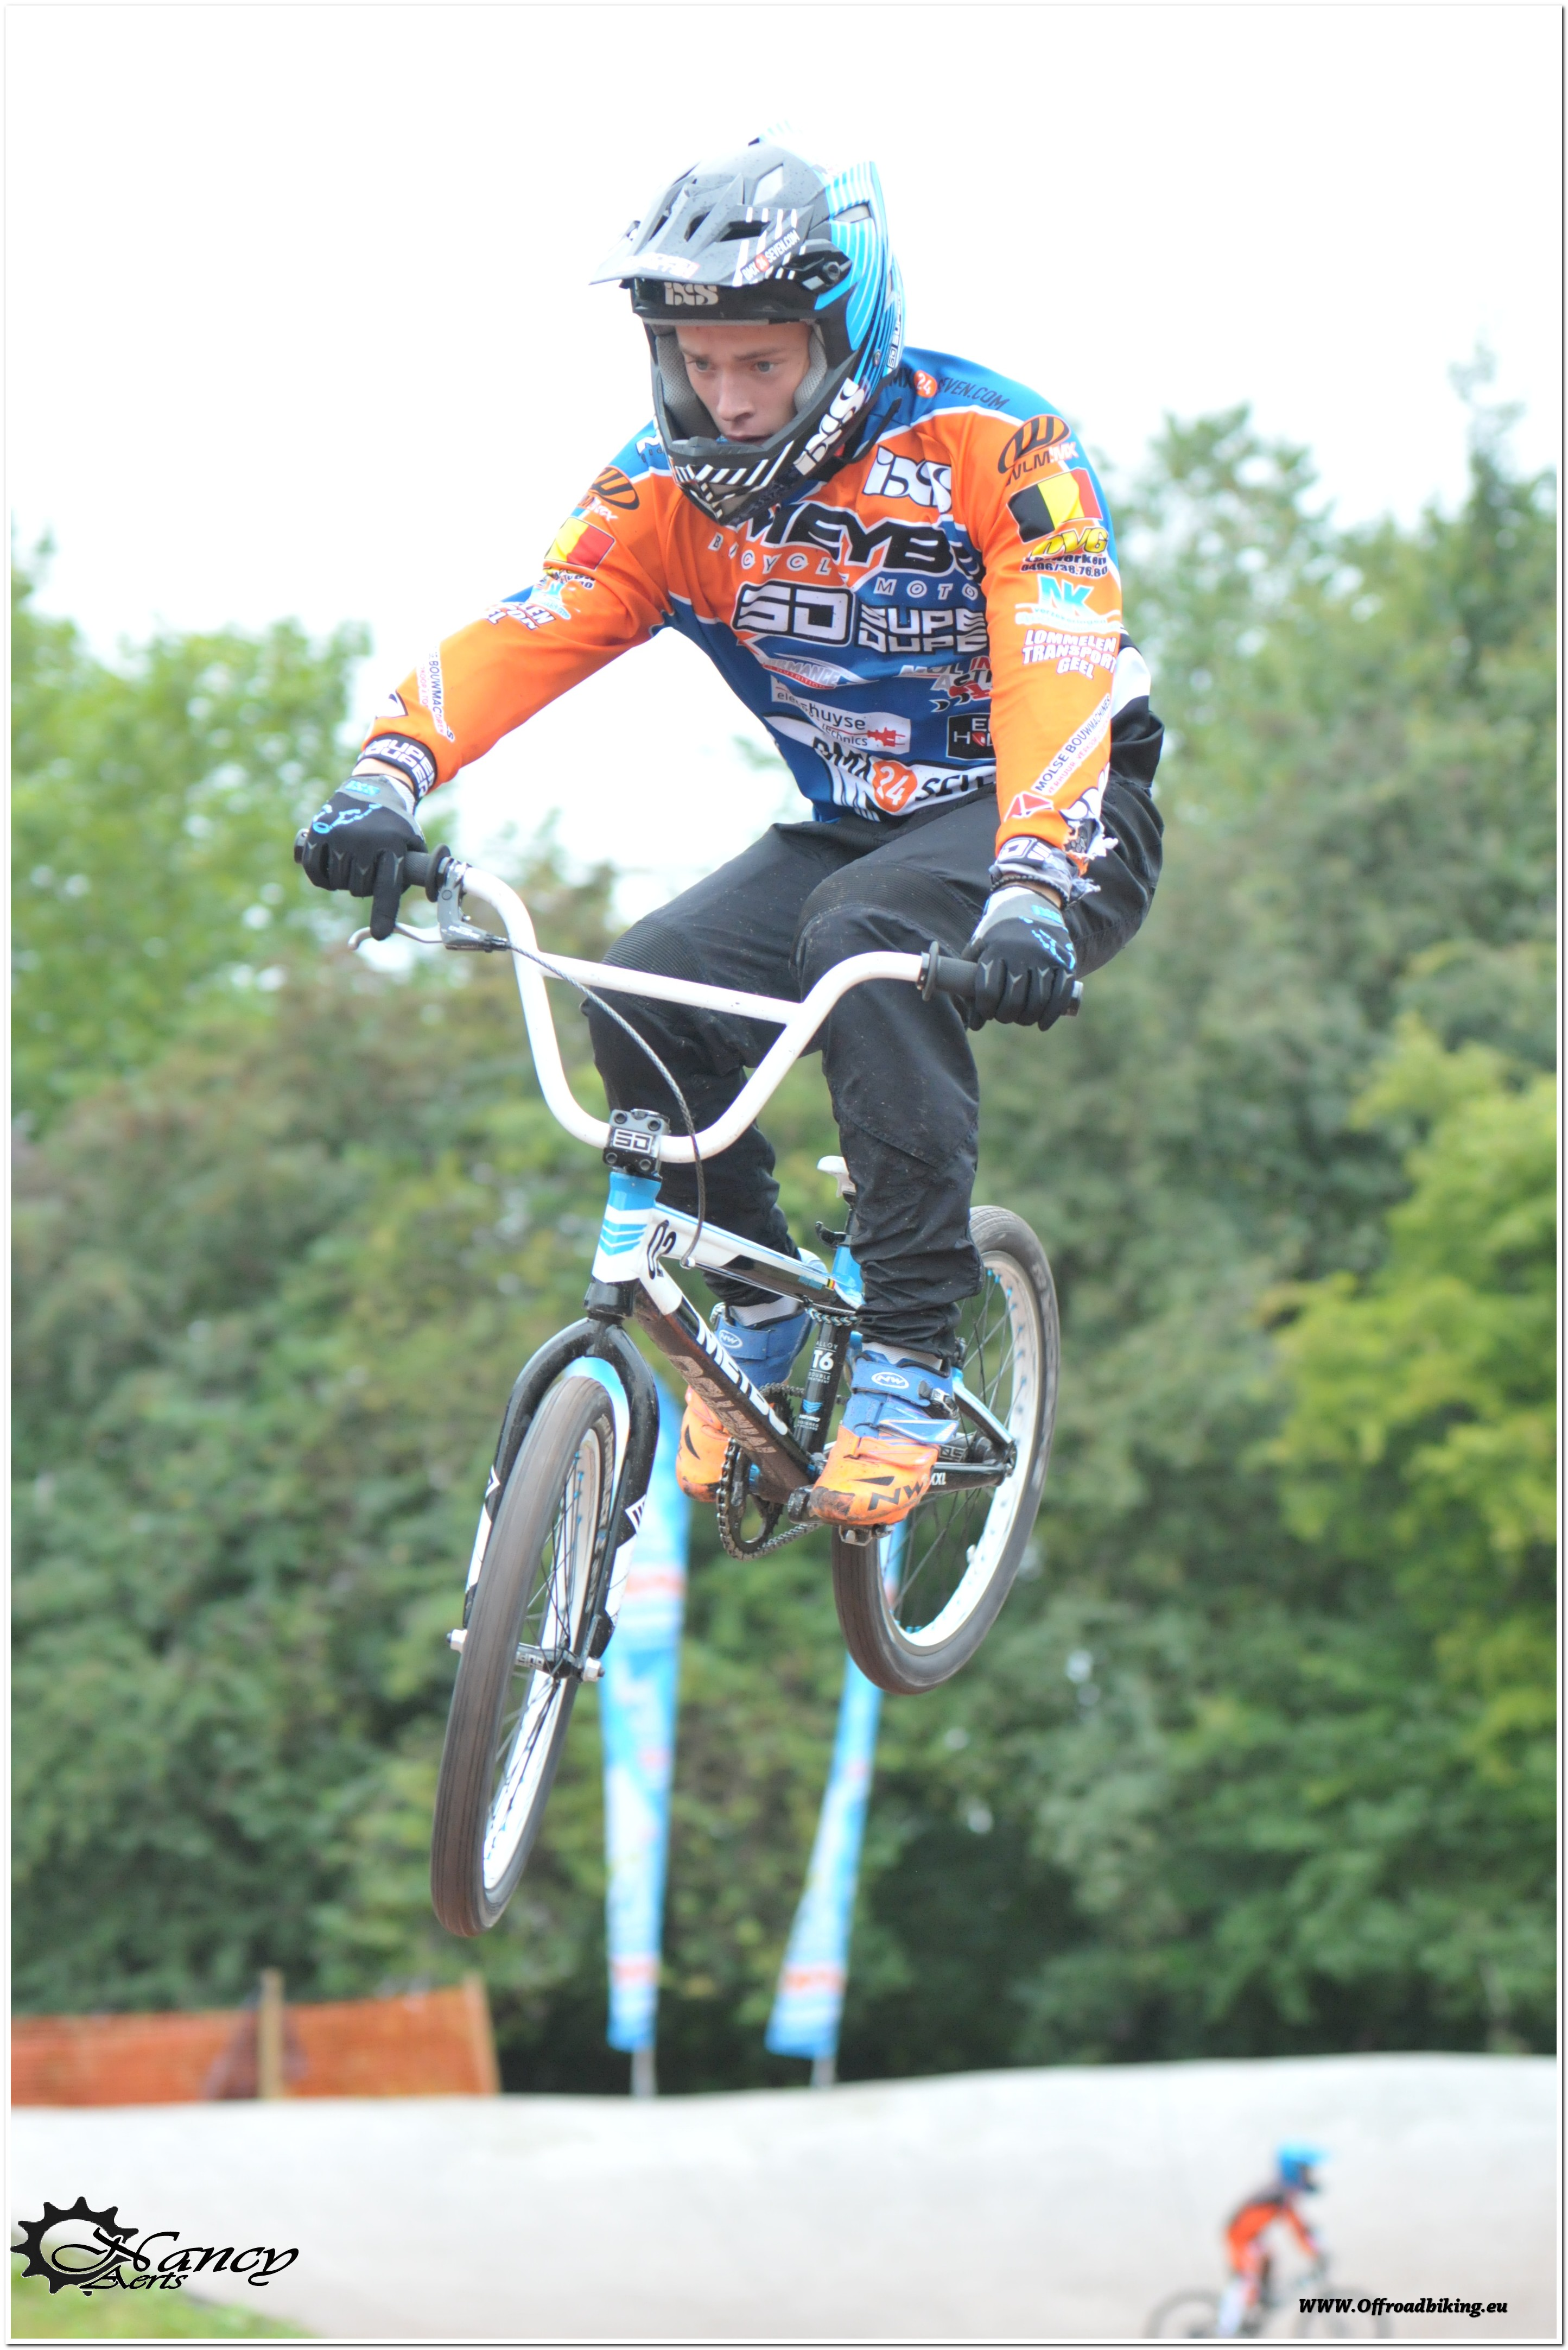 Topcompetitie 1 in Ravels